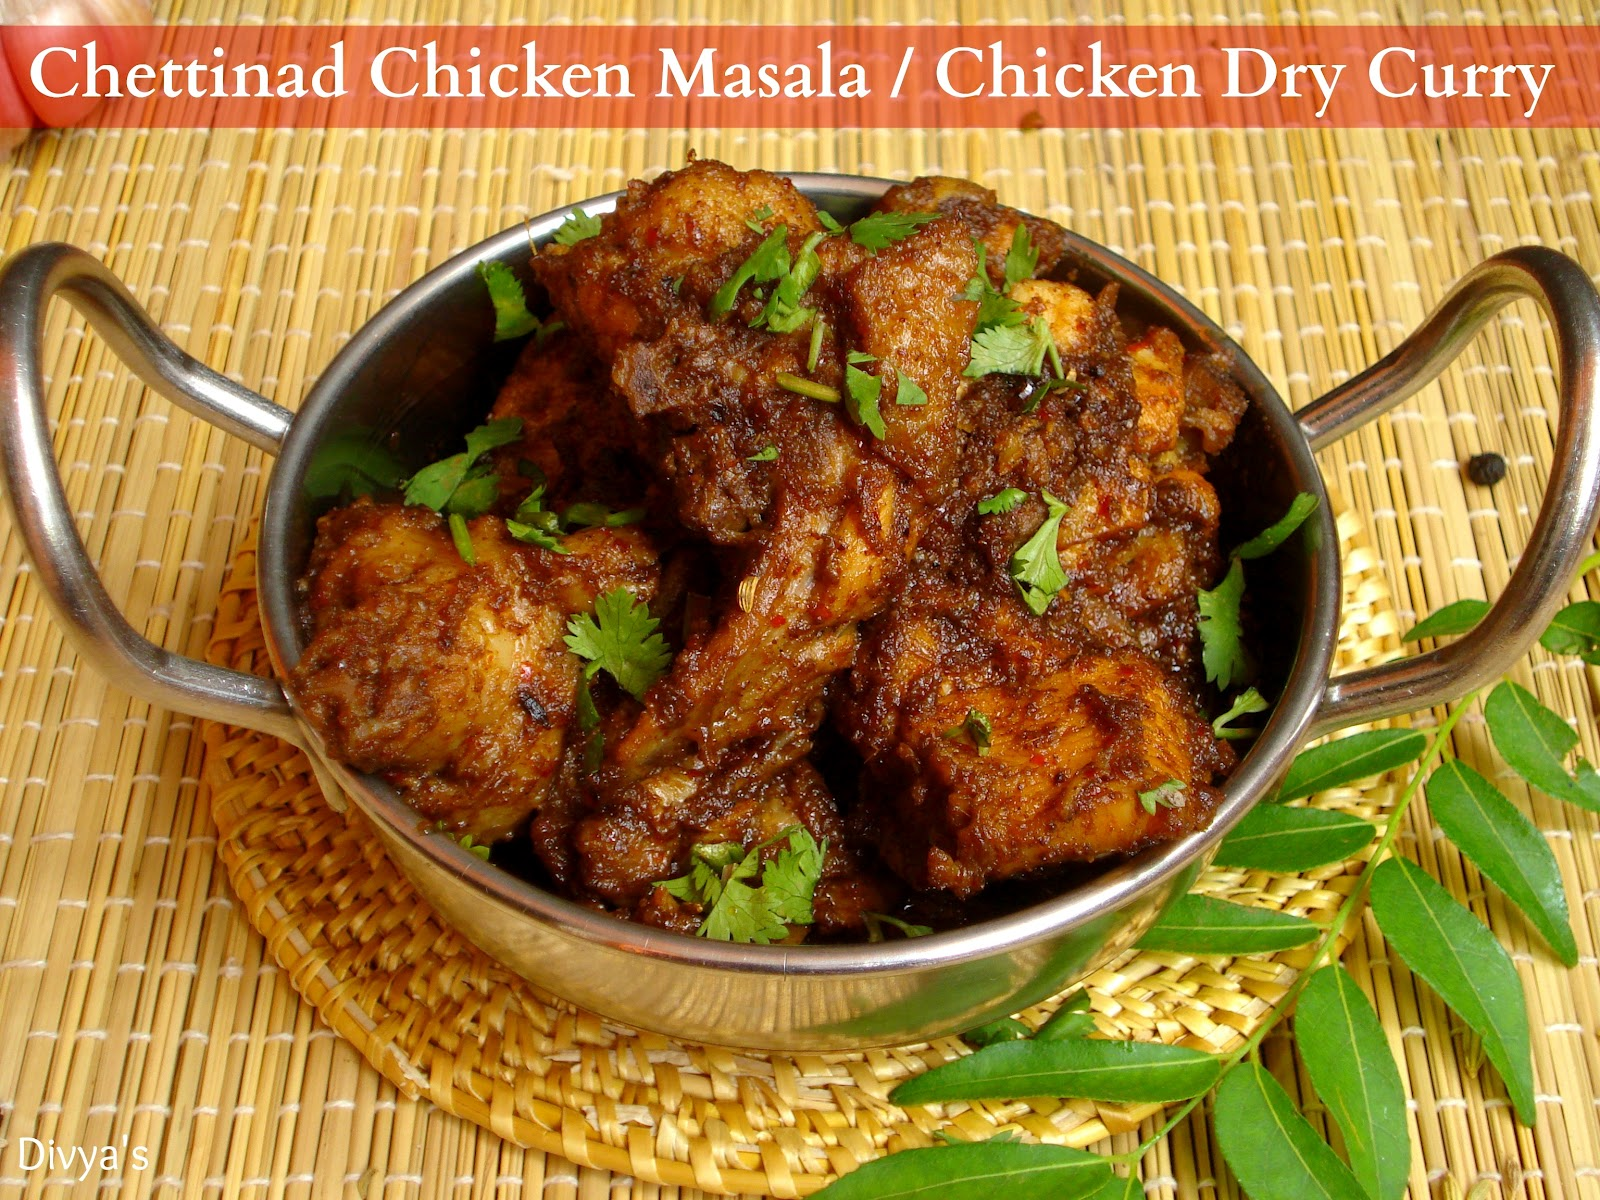 Easy indian food recipes in tamil language food world recipes easy indian food recipes in tamil language forumfinder Choice Image